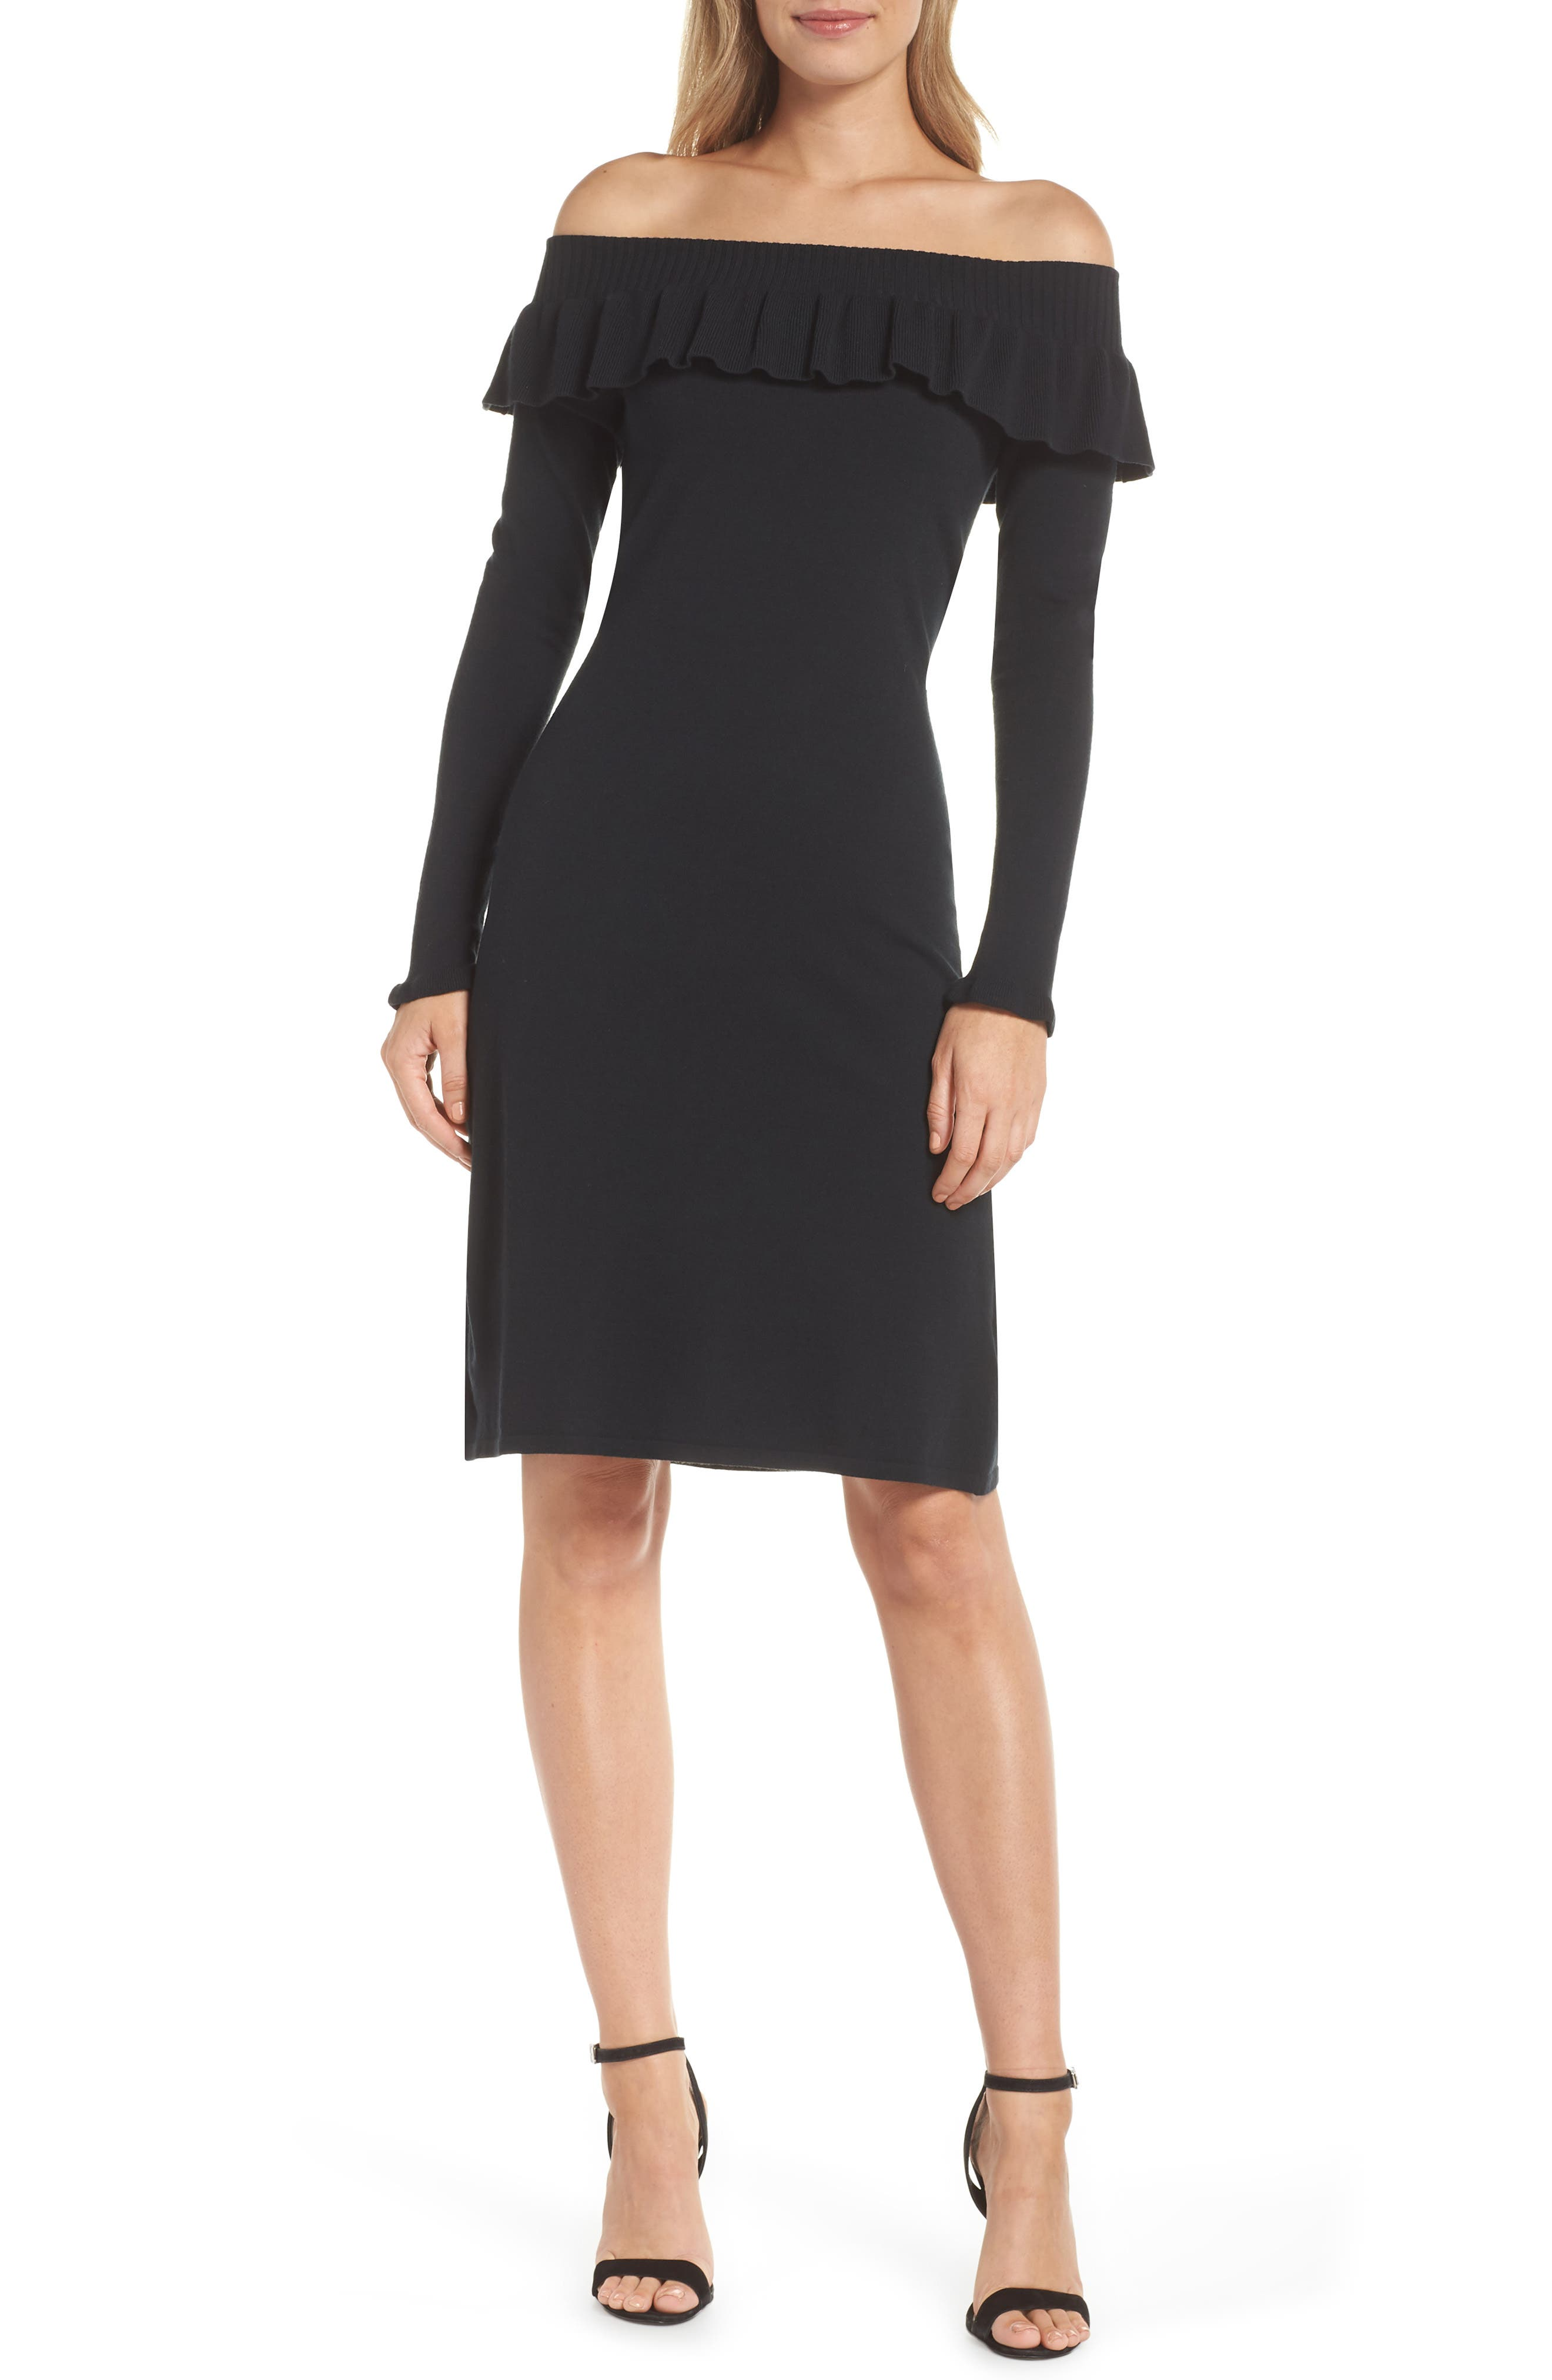 Lilly Pulitzer Moda Off The Shoulder Sweater Dress, Black